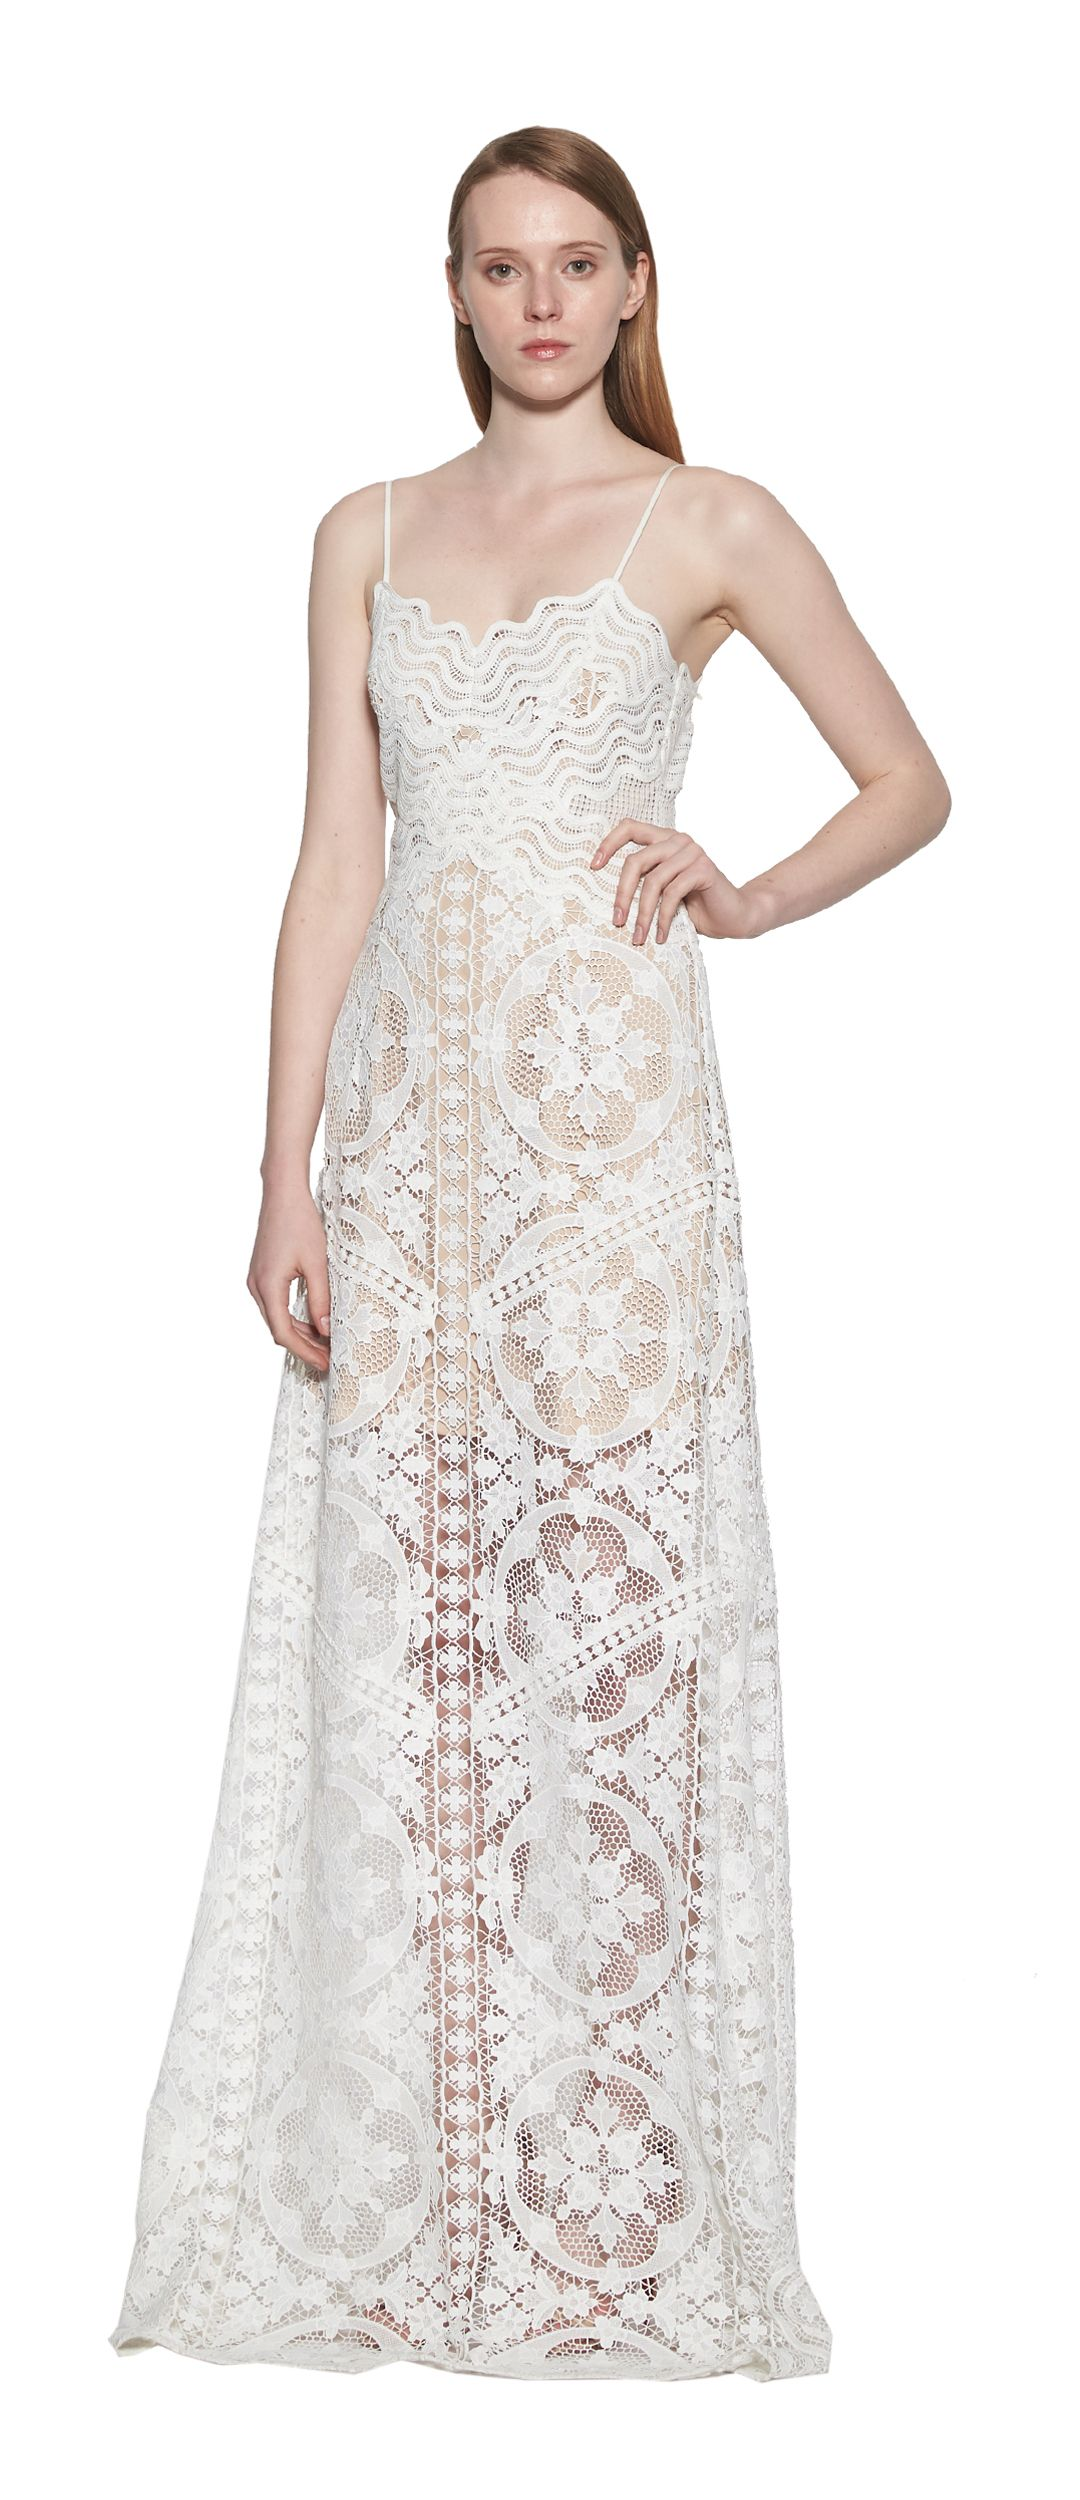 Padua Embroidered Maxi Dress Aijek Mordor Pinterest Dresses